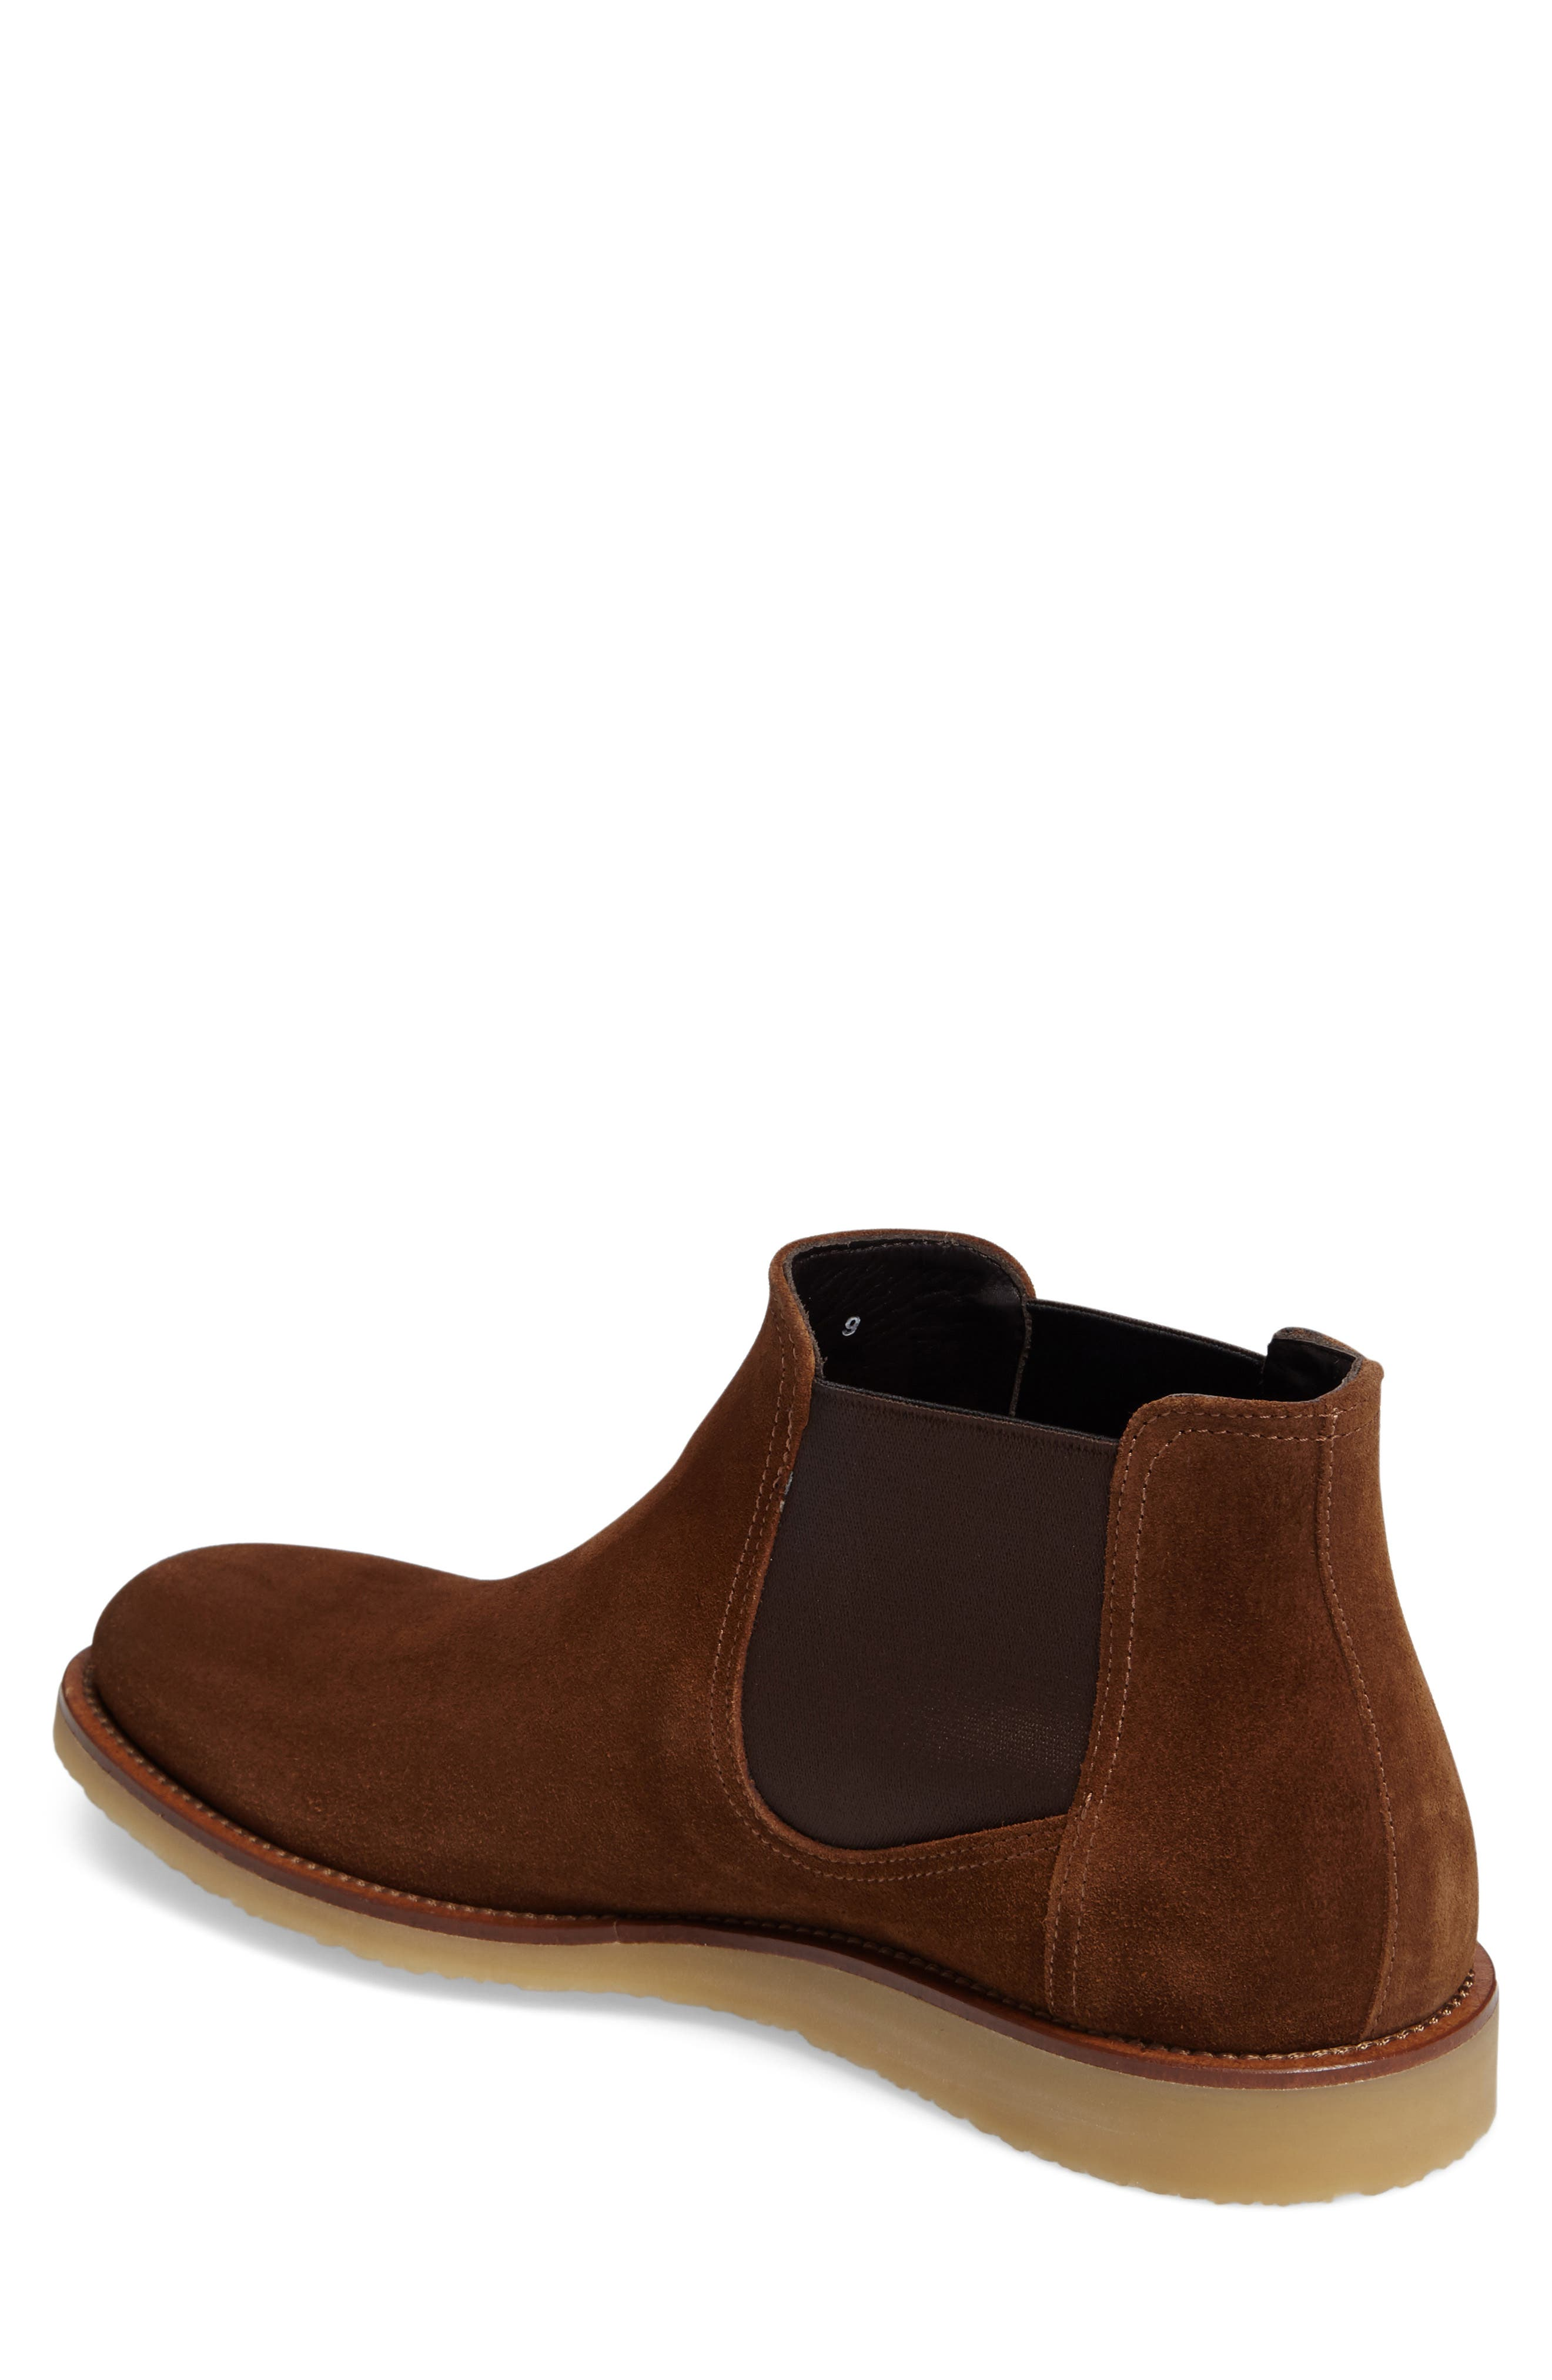 March Chelsea Boot,                             Alternate thumbnail 6, color,